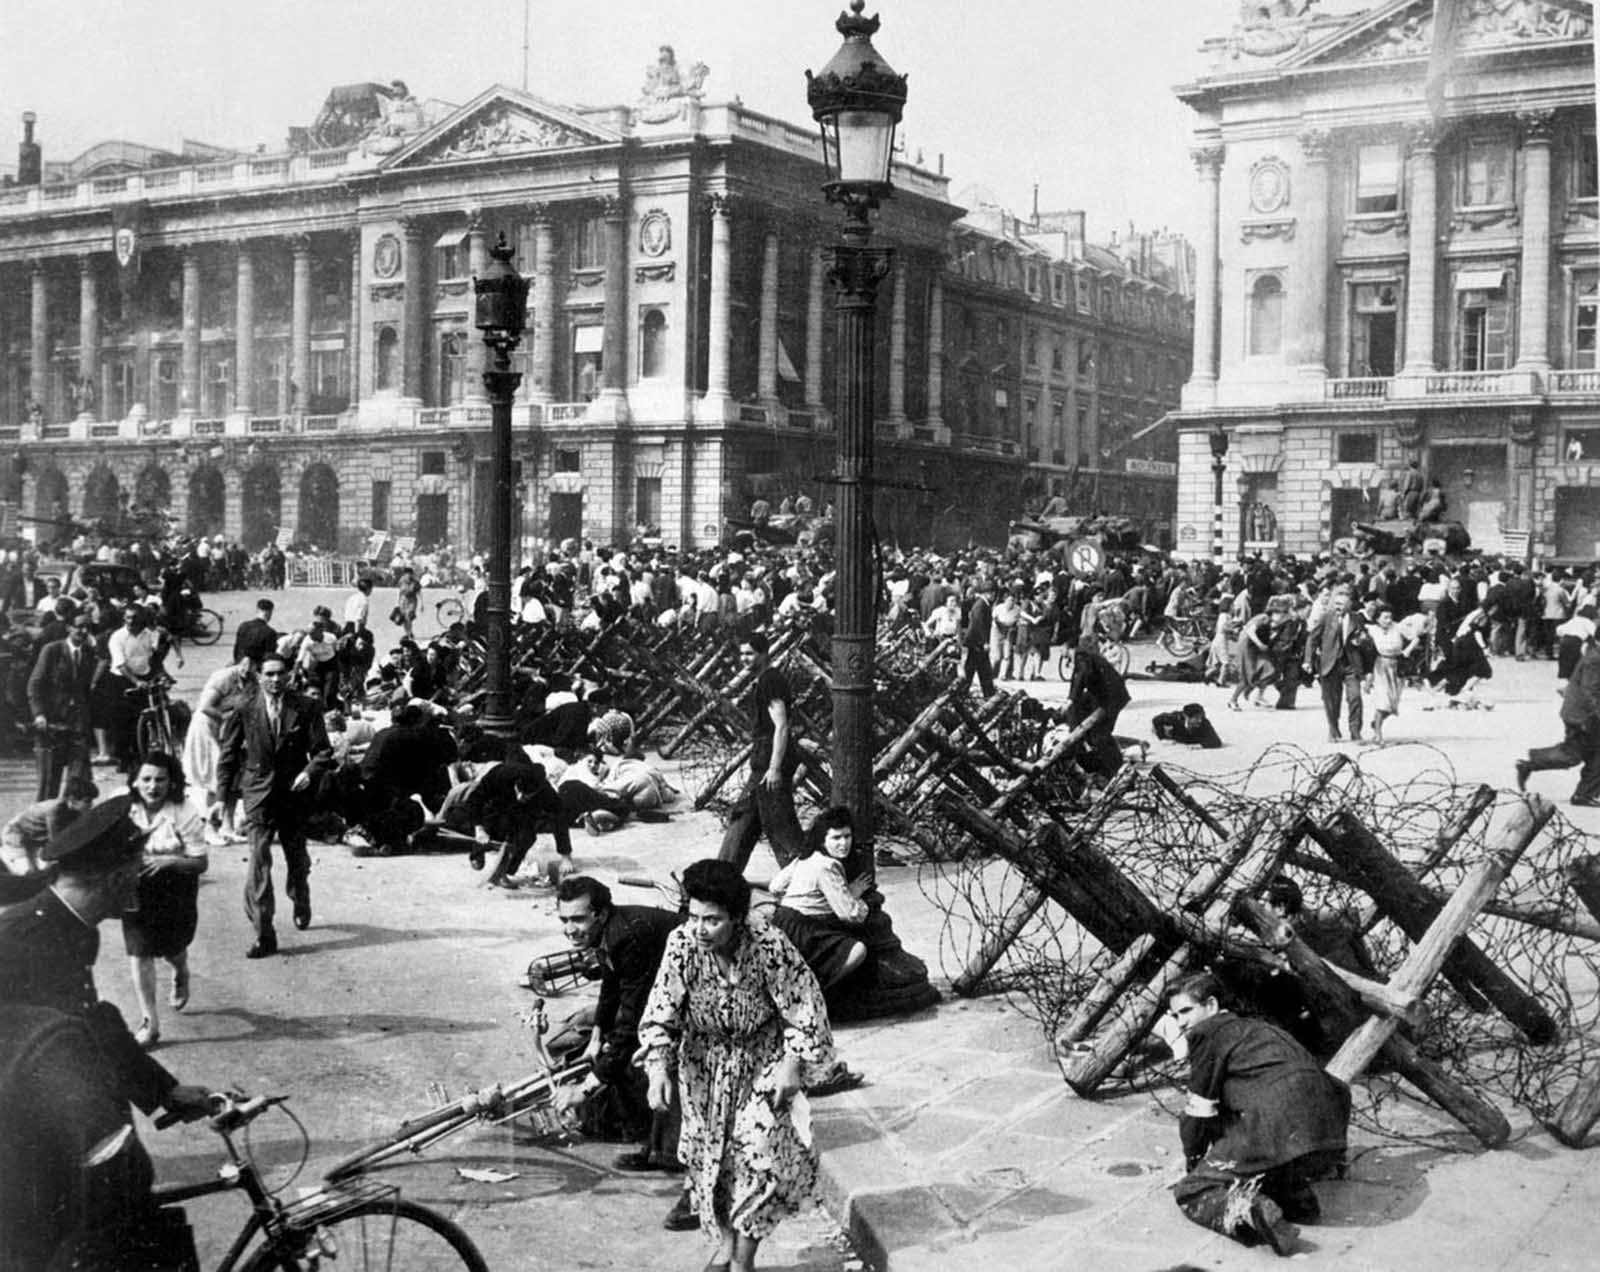 Crowds of Parisians celebrating the entry of Allied troops into Paris scatter for cover as a sniper fires from a building on the place De La Concorde. Although the Germans surrendered the city, small bands of snipers still remained. August 26, 1944.